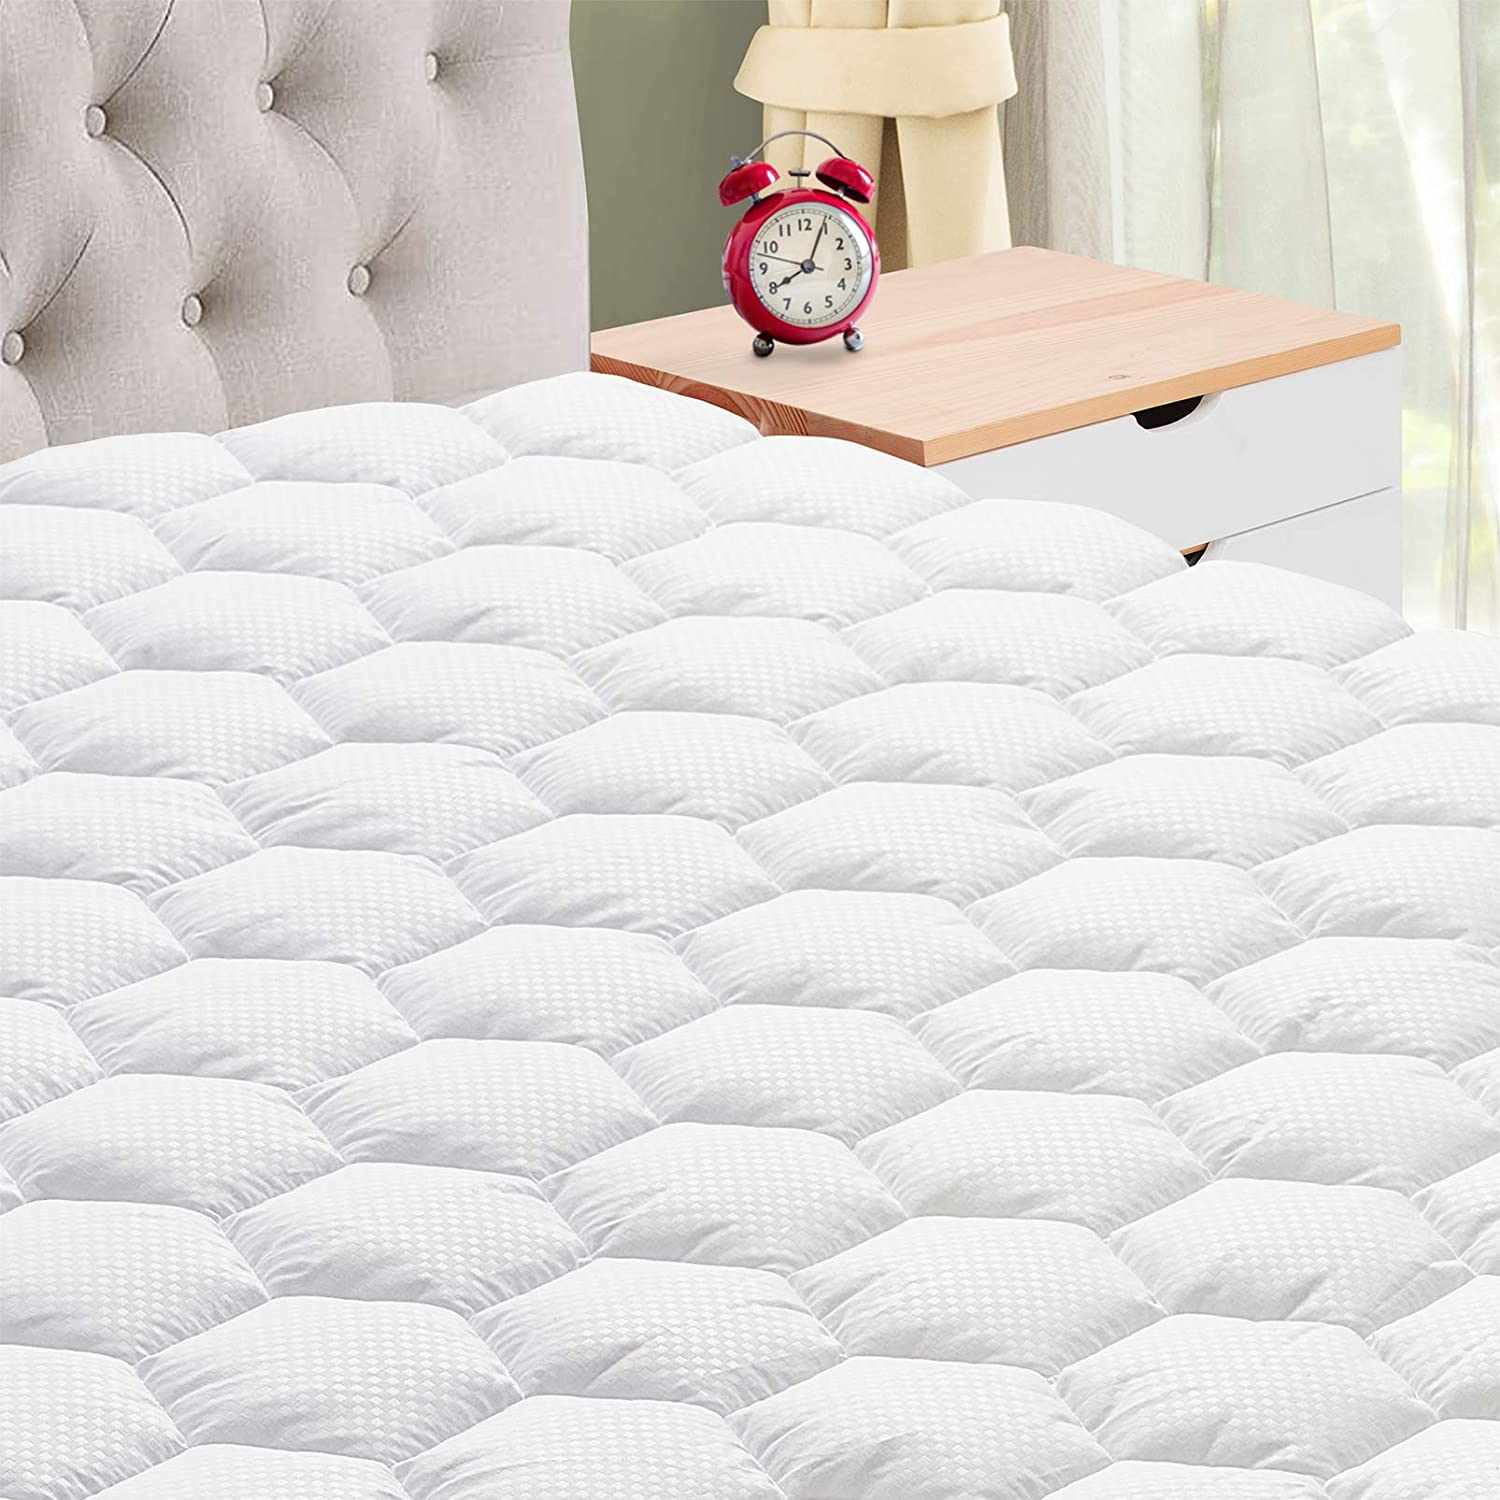 """IXELLES King Mattress Pad Cover, Soft Quilted Pillowtop Mattress Pad, Cooling Mattress Topper with Deep Pocket (8"""" - 21"""")"""